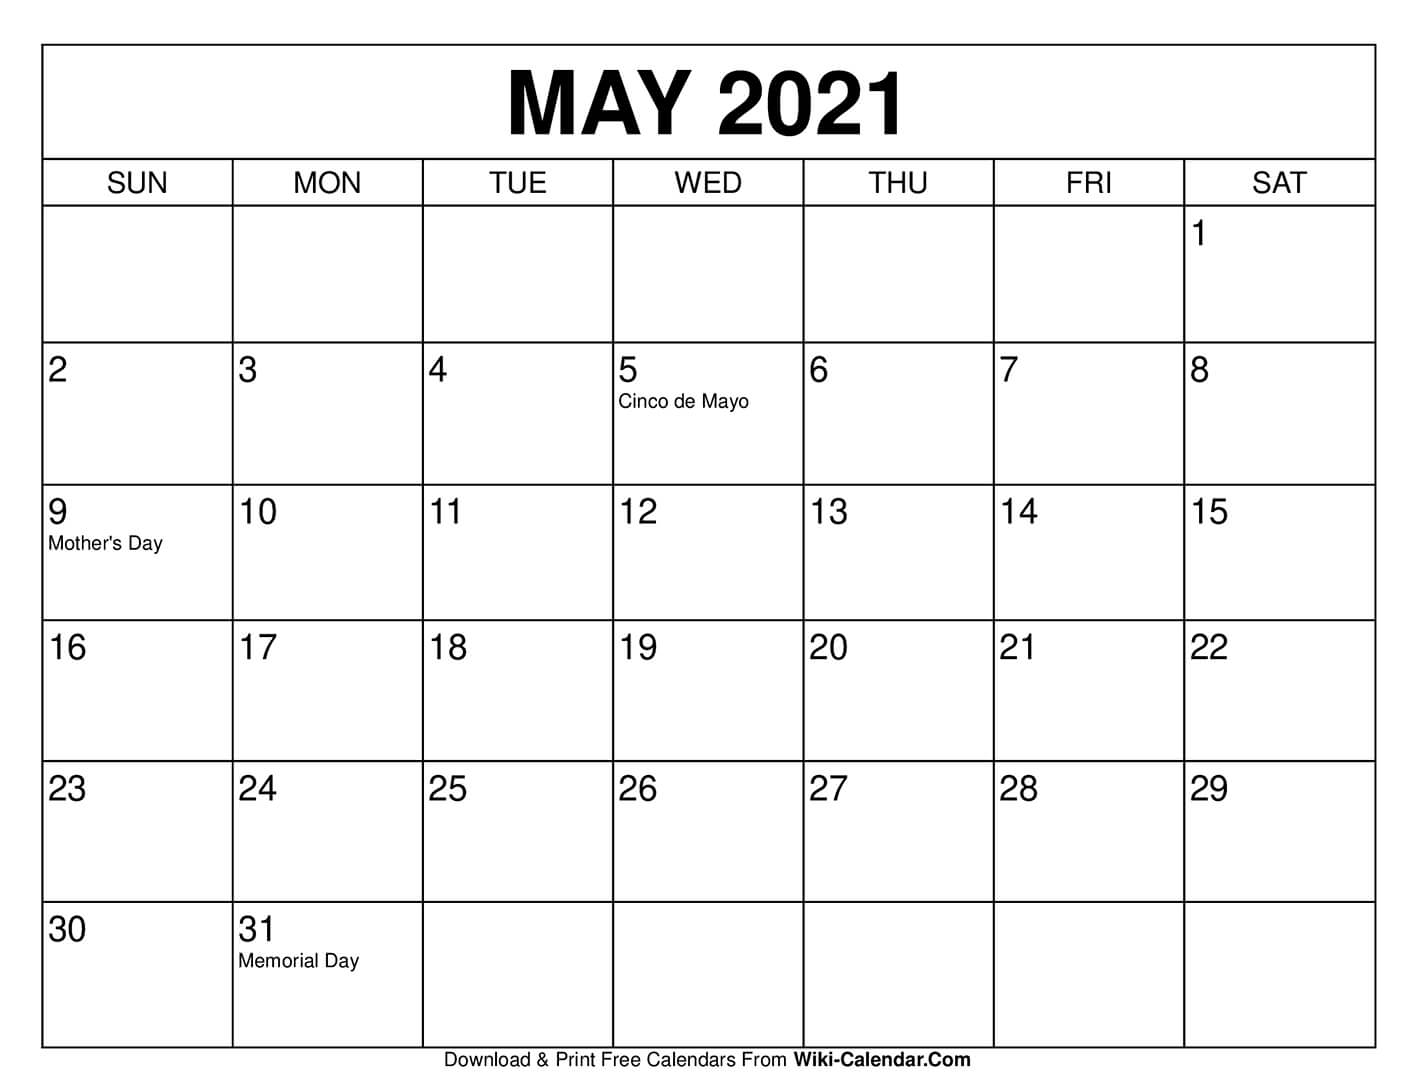 Calendar For May 2021 With Holidays Photos